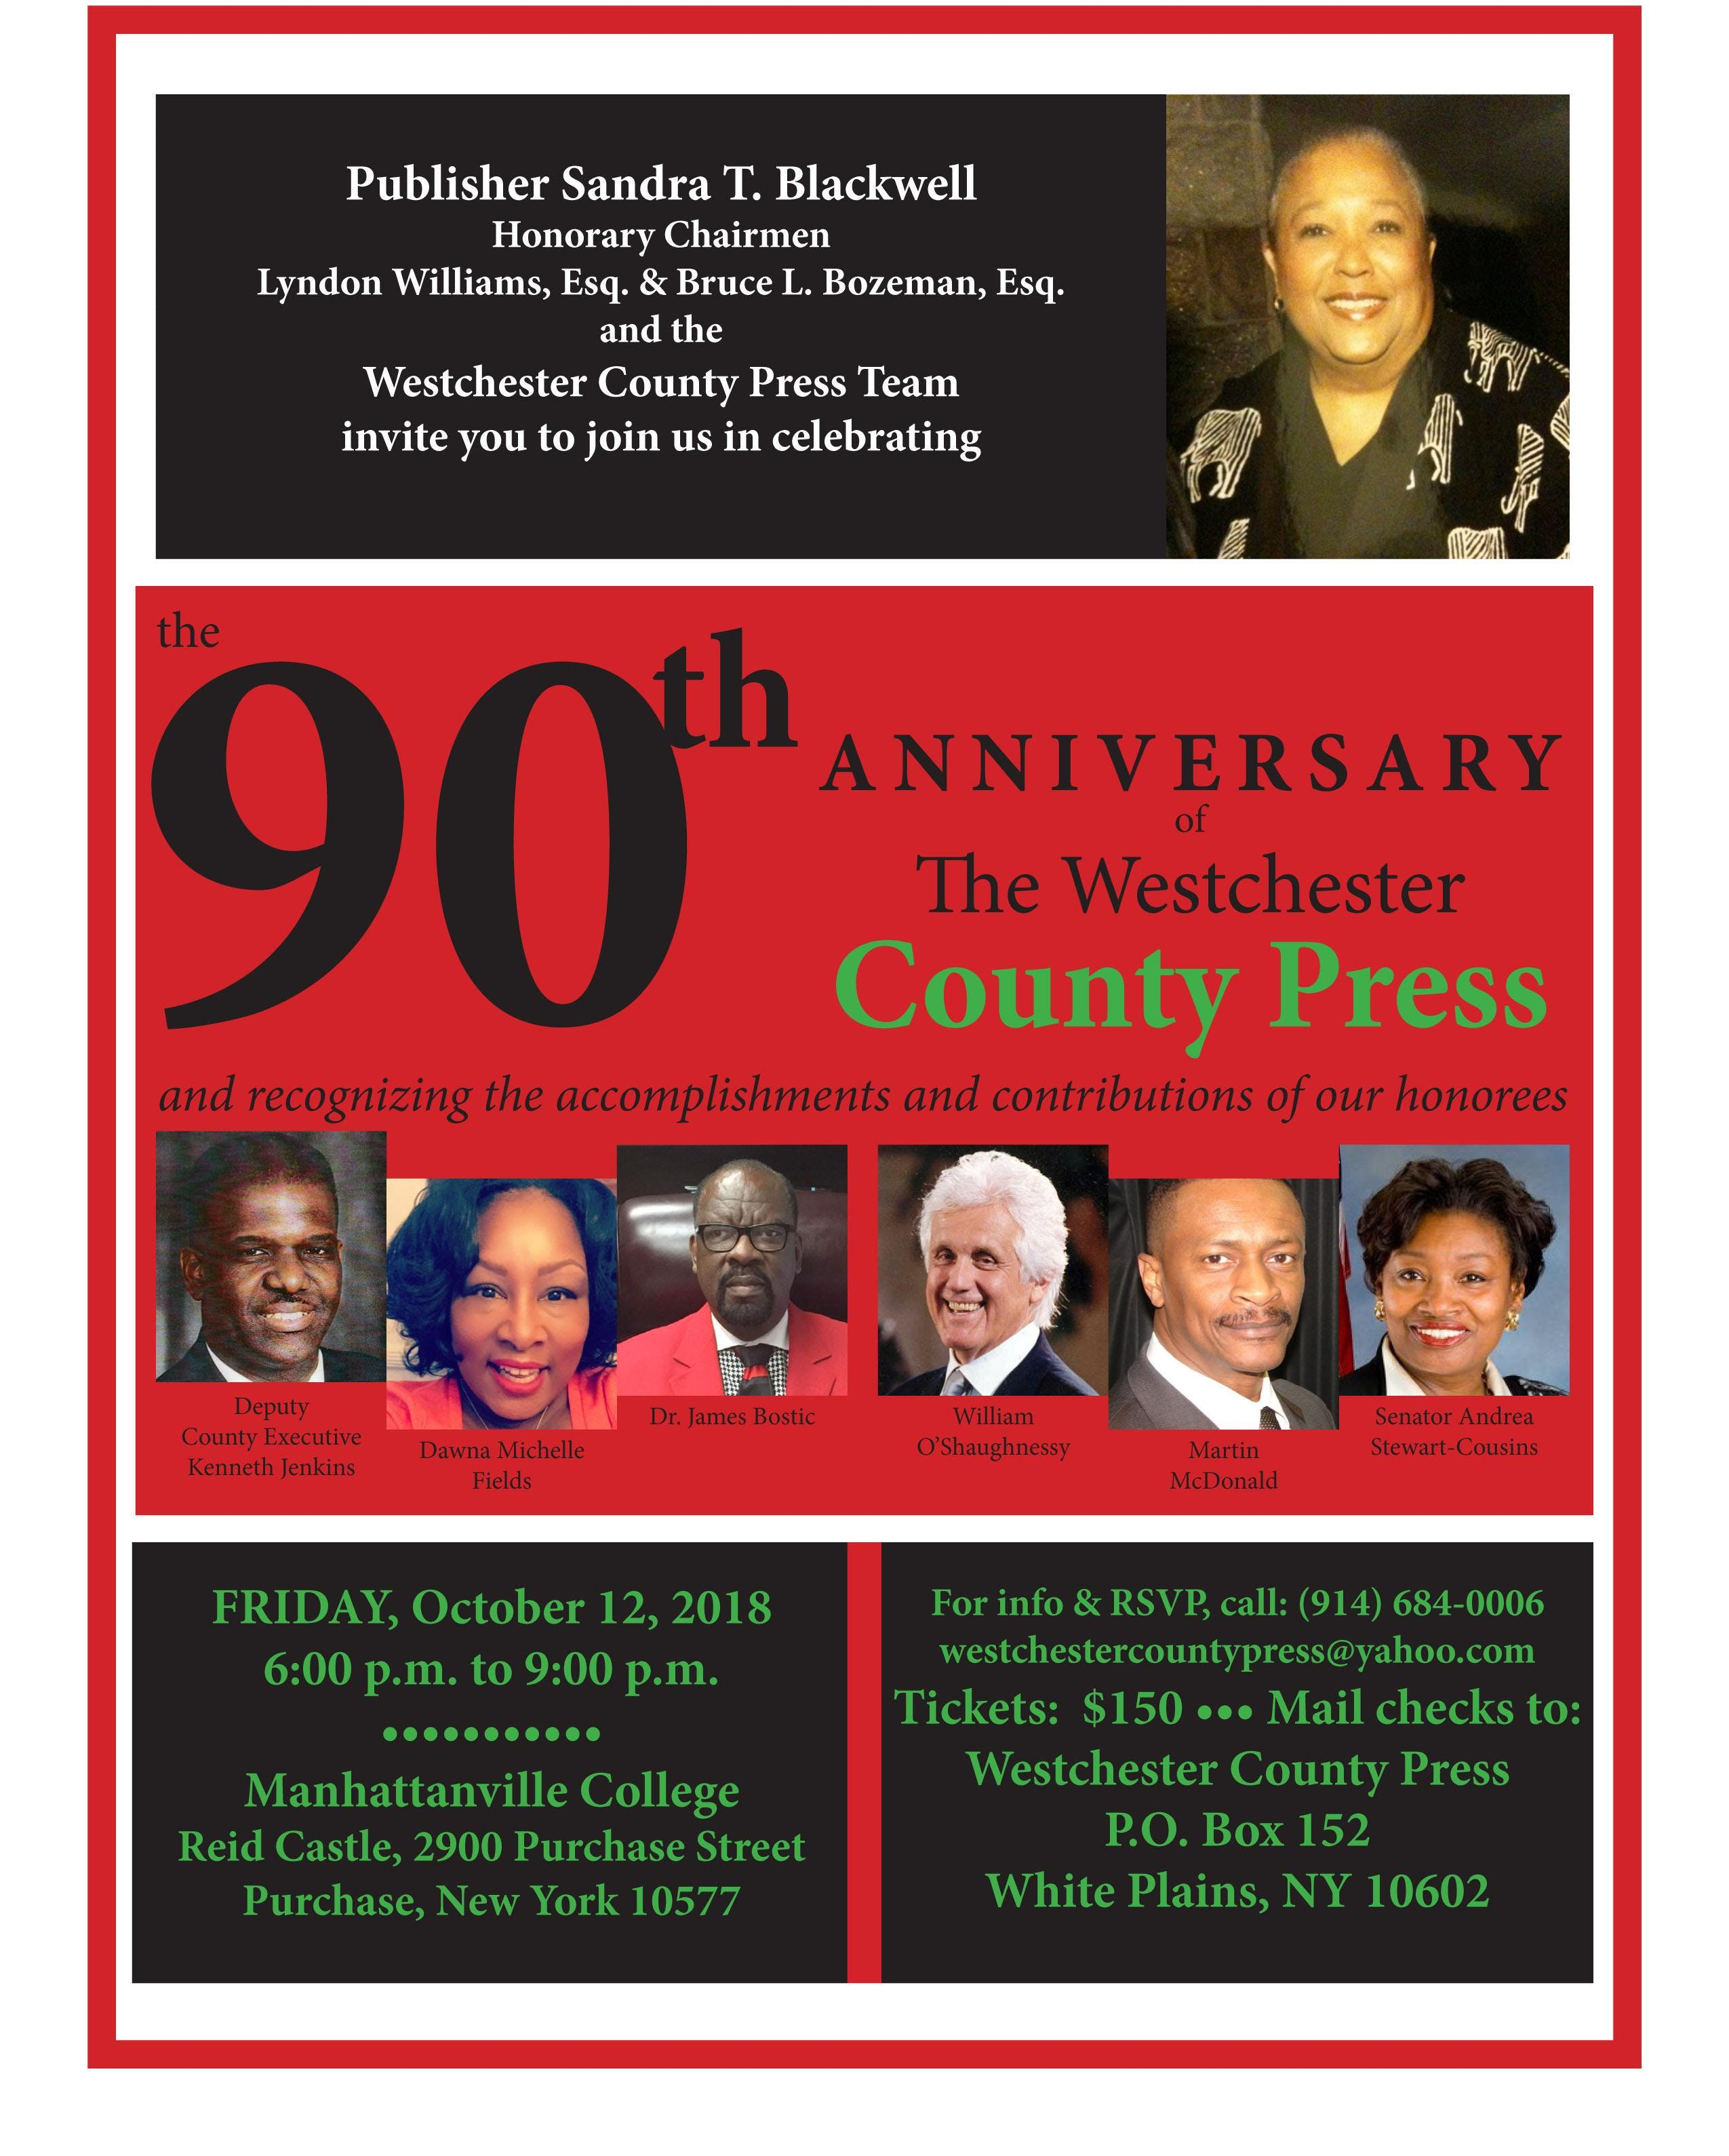 Westchester County Press 90th Anniversary Celebration - 12 OCT 2018